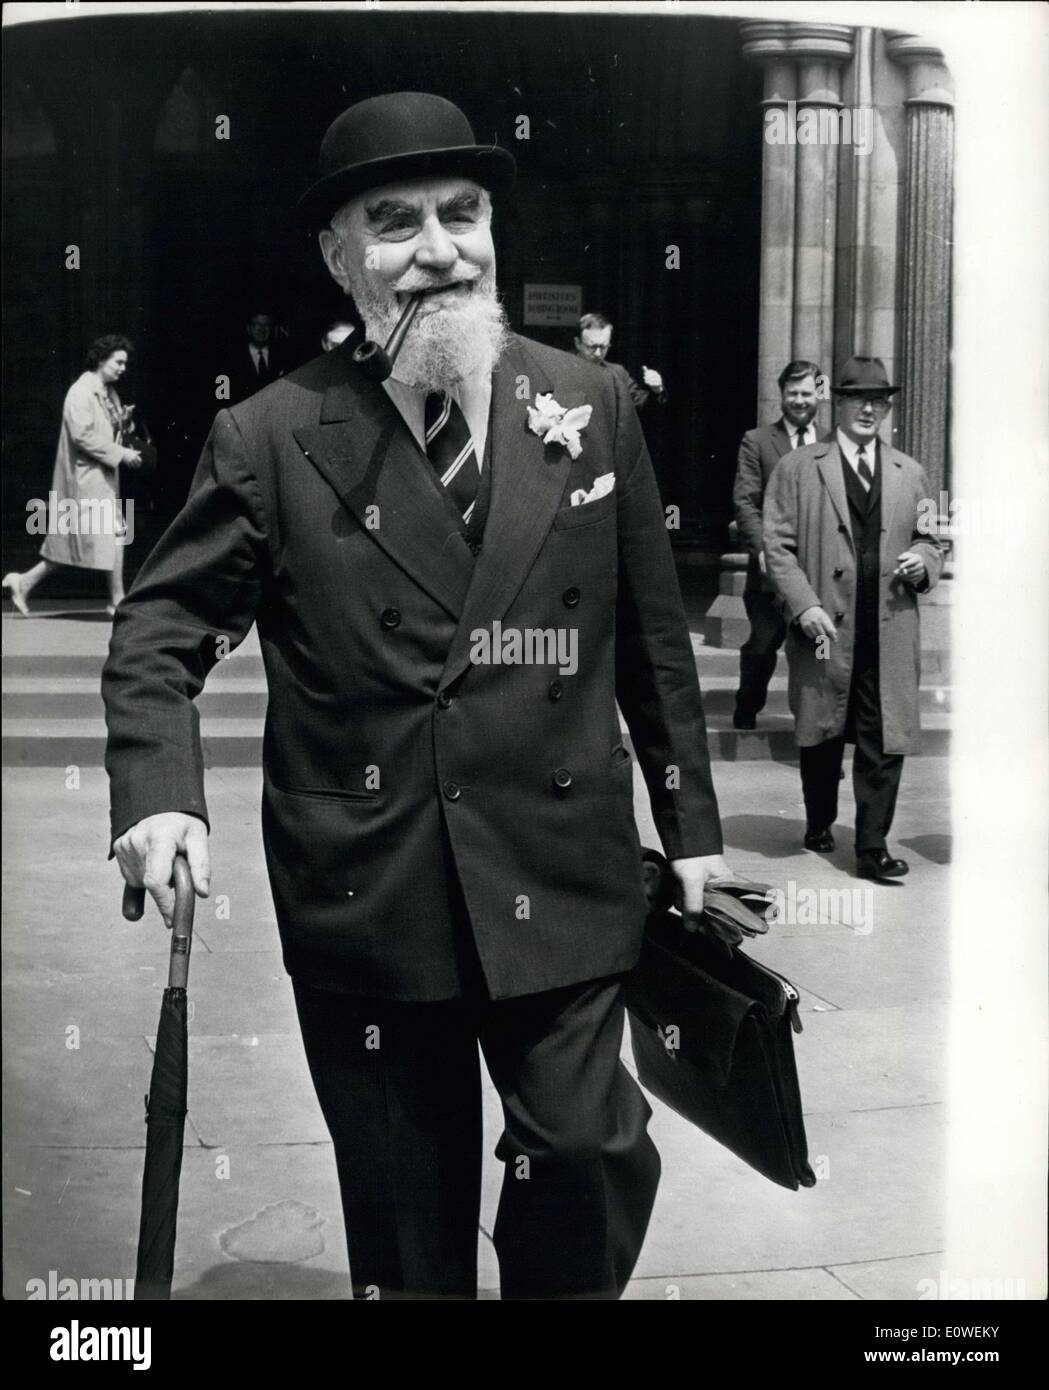 Jul. 28, 1962 - Bearded Oil Tycoon Gets Damages - And Bill For Thousands In Costs: Bearded oil magnate Nubar Gulbenkian, 66, won 22 damages from the BBC yesterday. With a wilting orchid in his lapel, he said: ''It will not materially alter by standard of living. But what will, though in a small way, are the thousands of pounds in costs he will have to pay for bringing the case against the BBC in the High Court. He sued for a telerecording of an interview in which he made disparaging remarks about the trustees of his millionaire father's 5 million foundation to charity - Stock Image